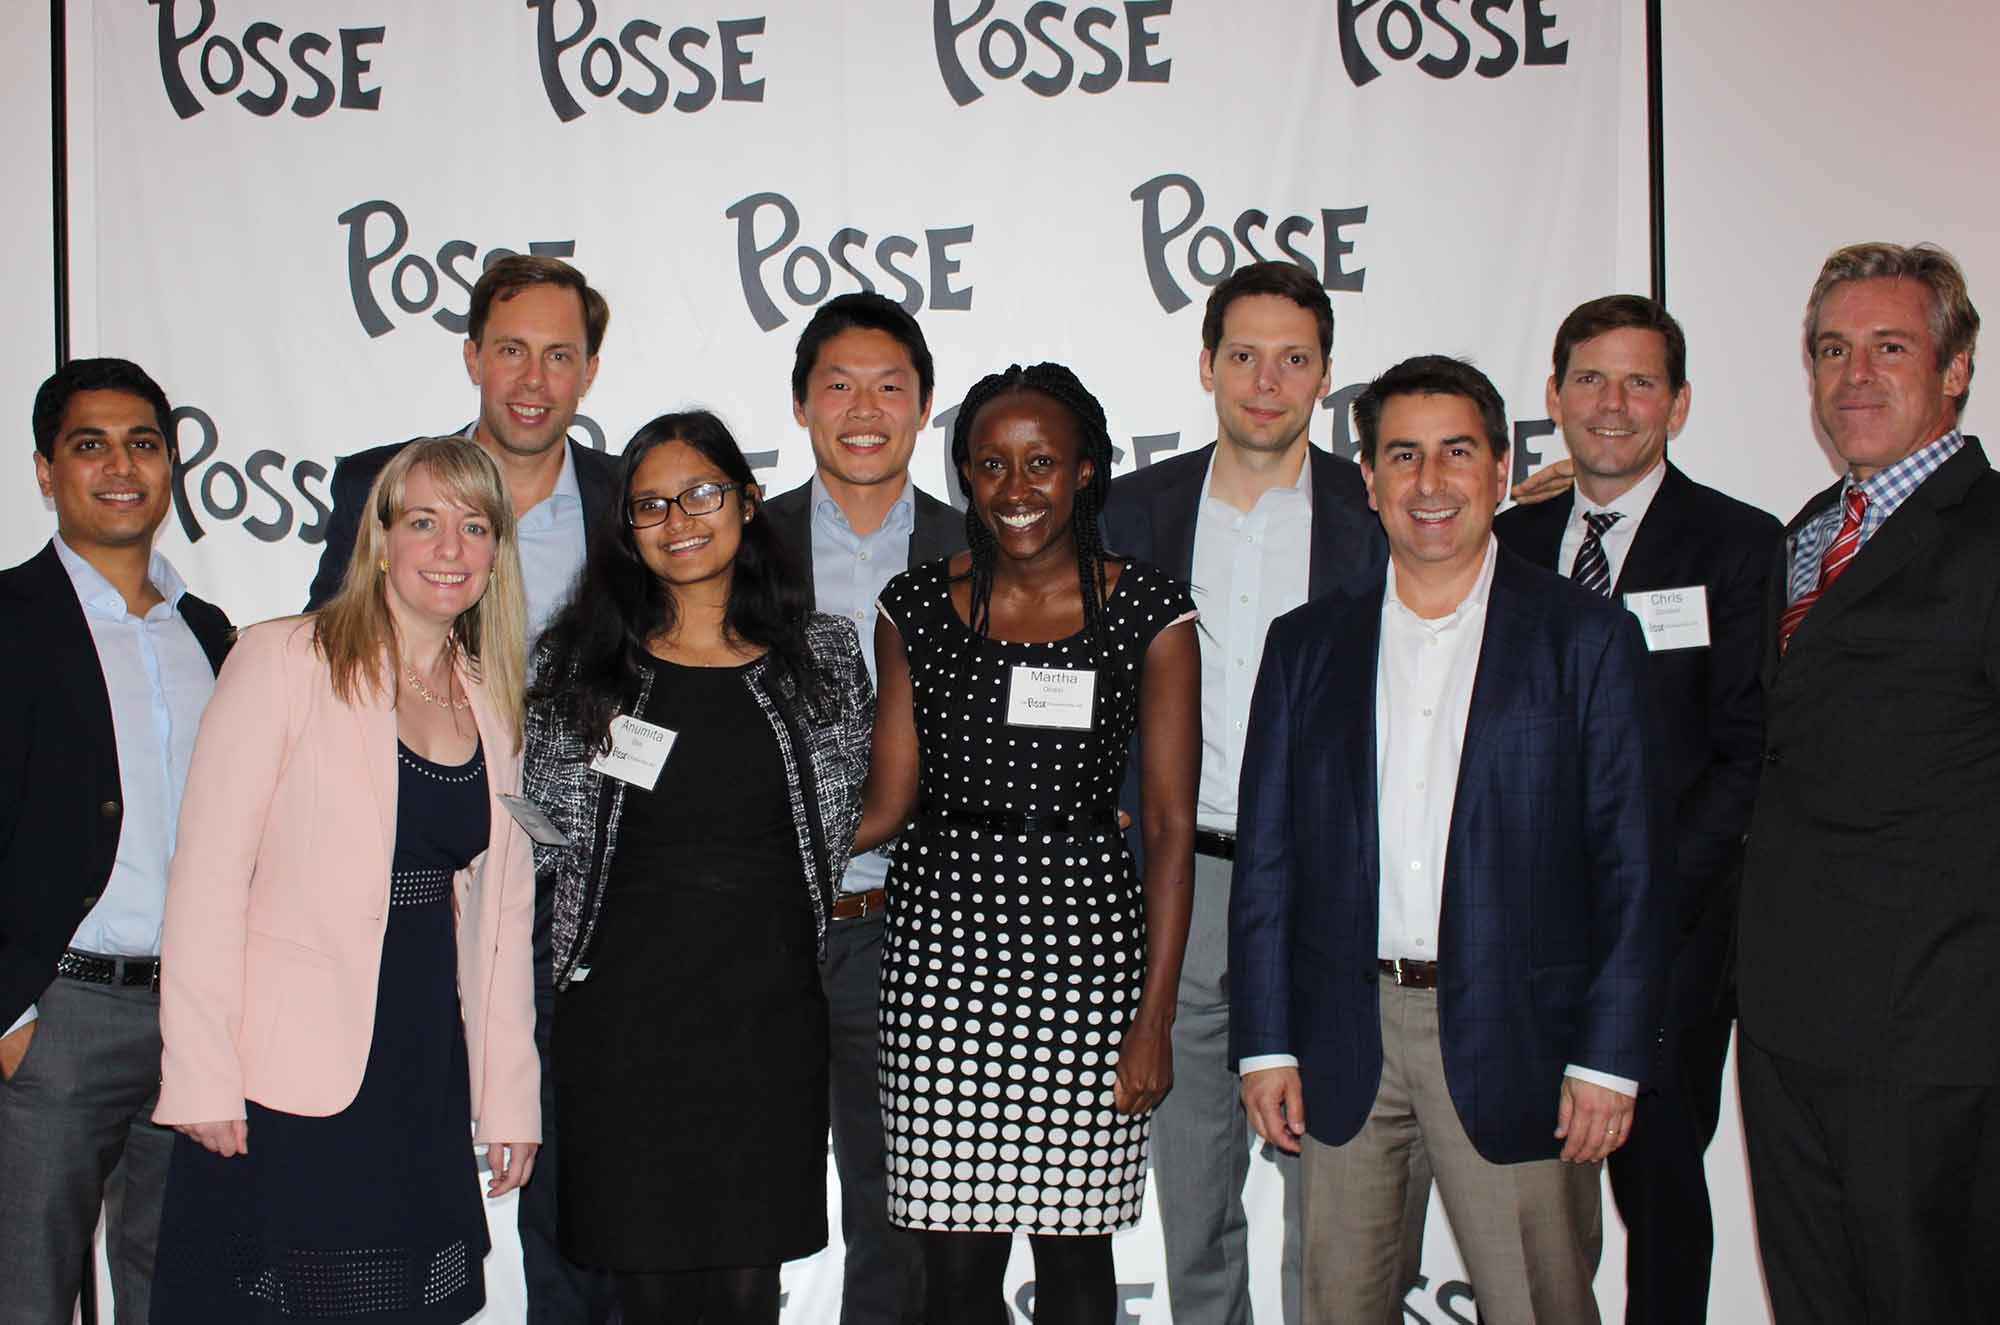 Bain Capital Double Impact Honored at Posse Foundation Power of 10 Event